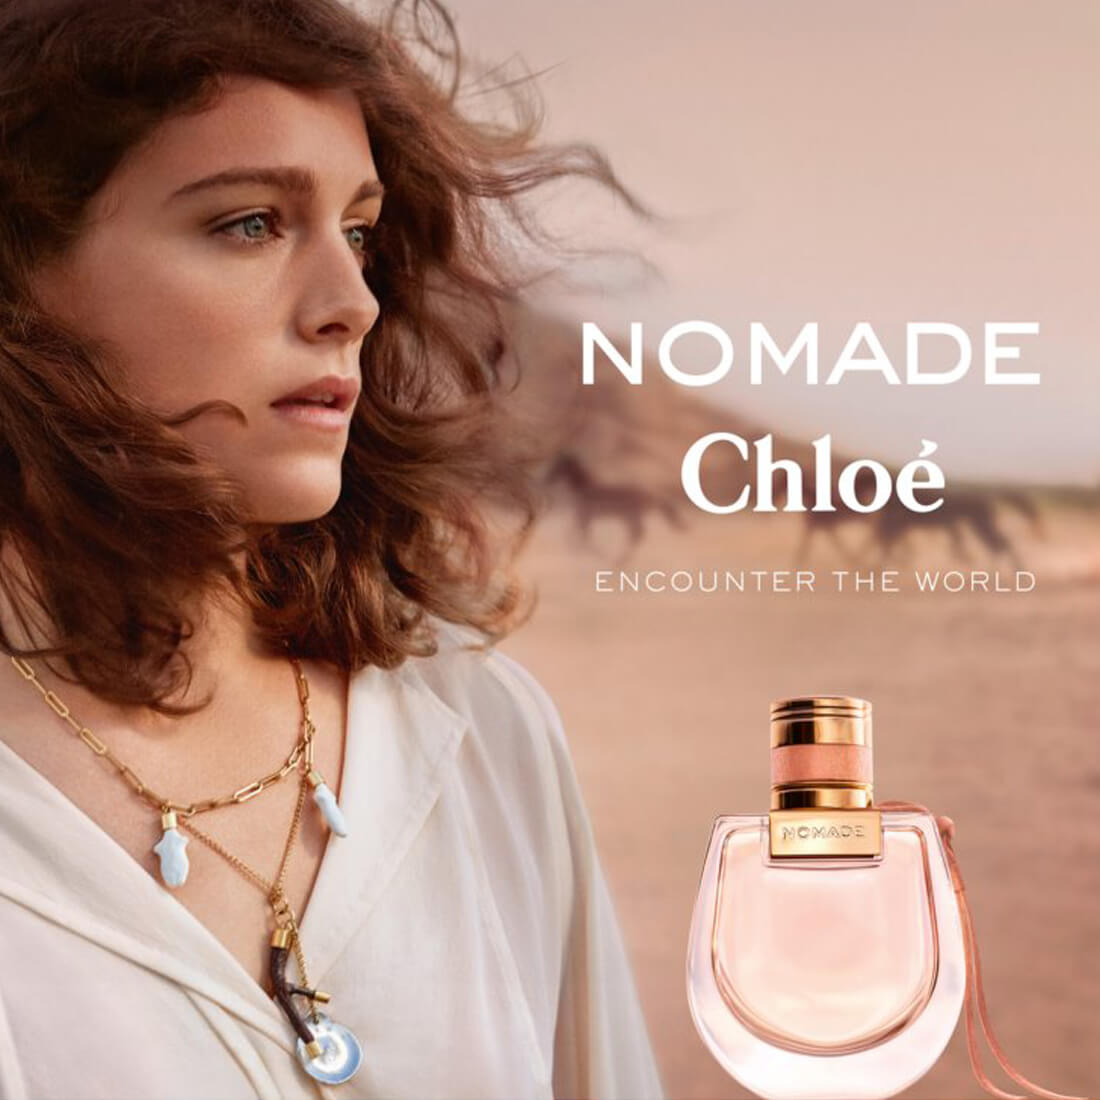 Chloe Nomade Eau De Perfume For Women 75ml